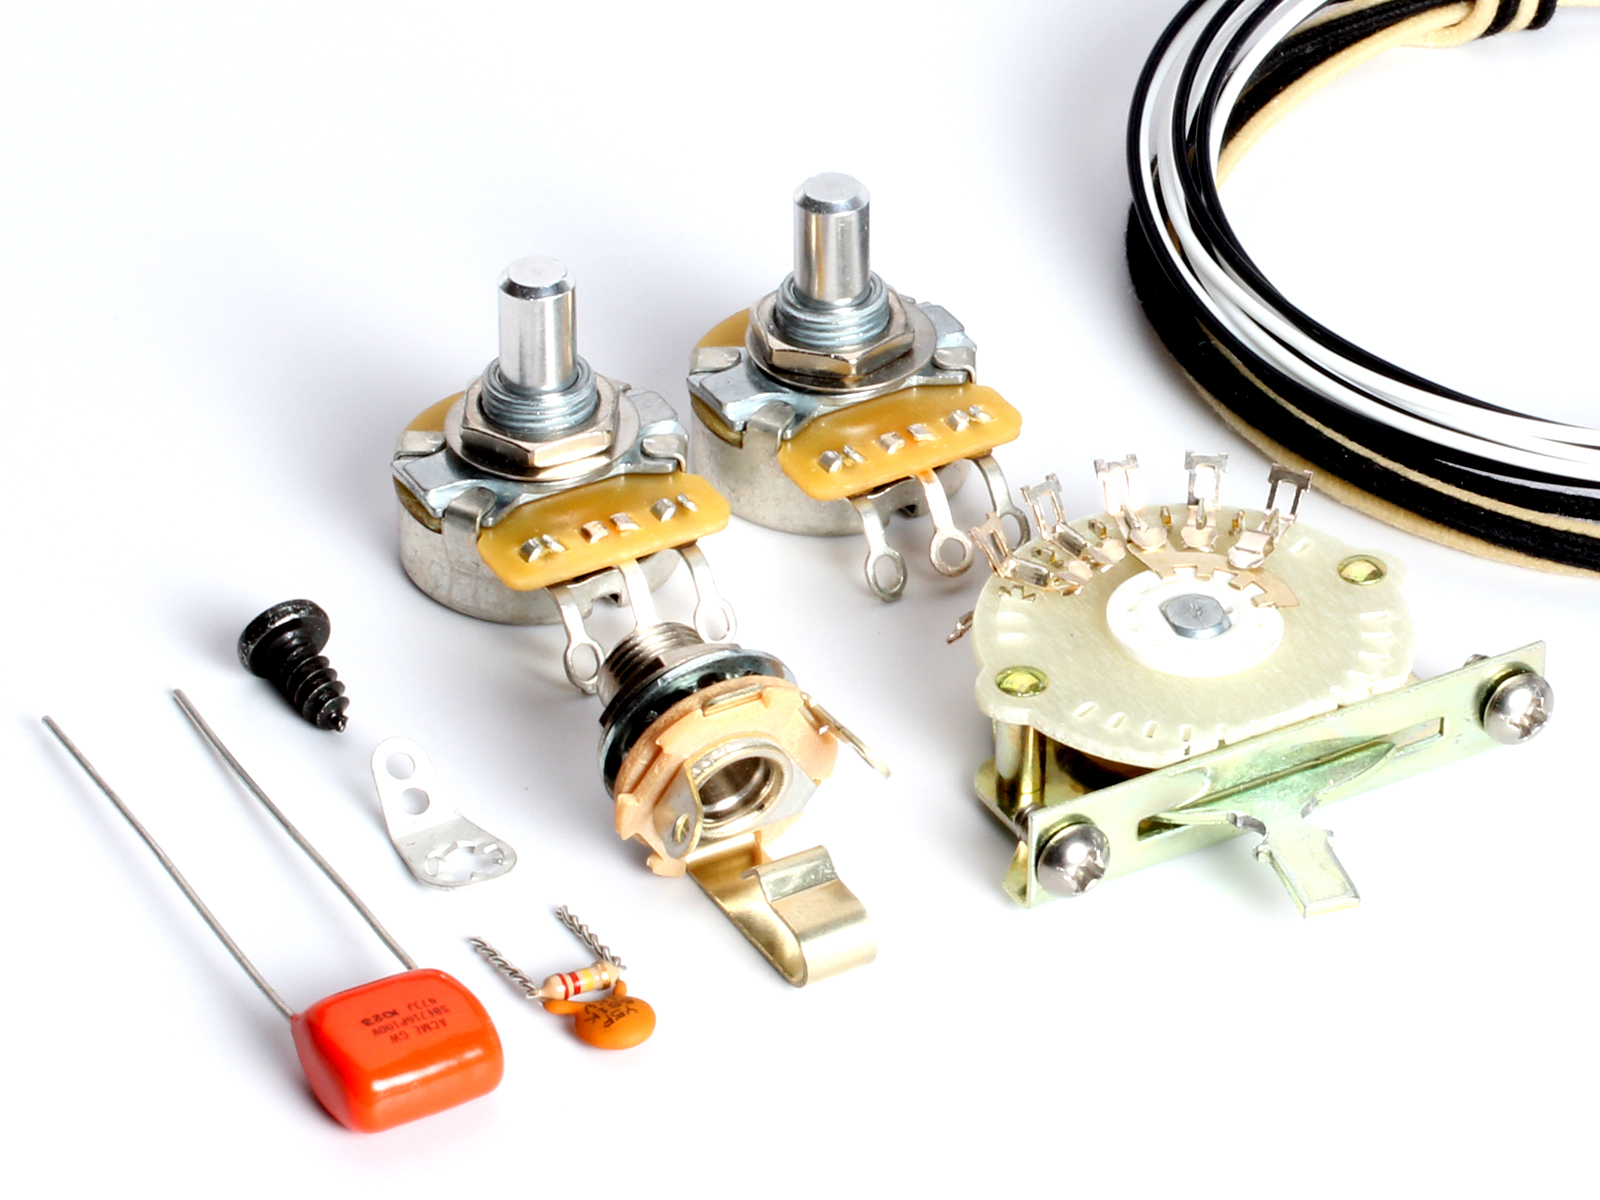 Toneshapers Callaham Parts Overview in addition toneshapers in addition Toneshapers Callaham Parts Overview moreover Toneshapers Callaham Parts Overview furthermore Tuners. on toneshapers callaham parts overview